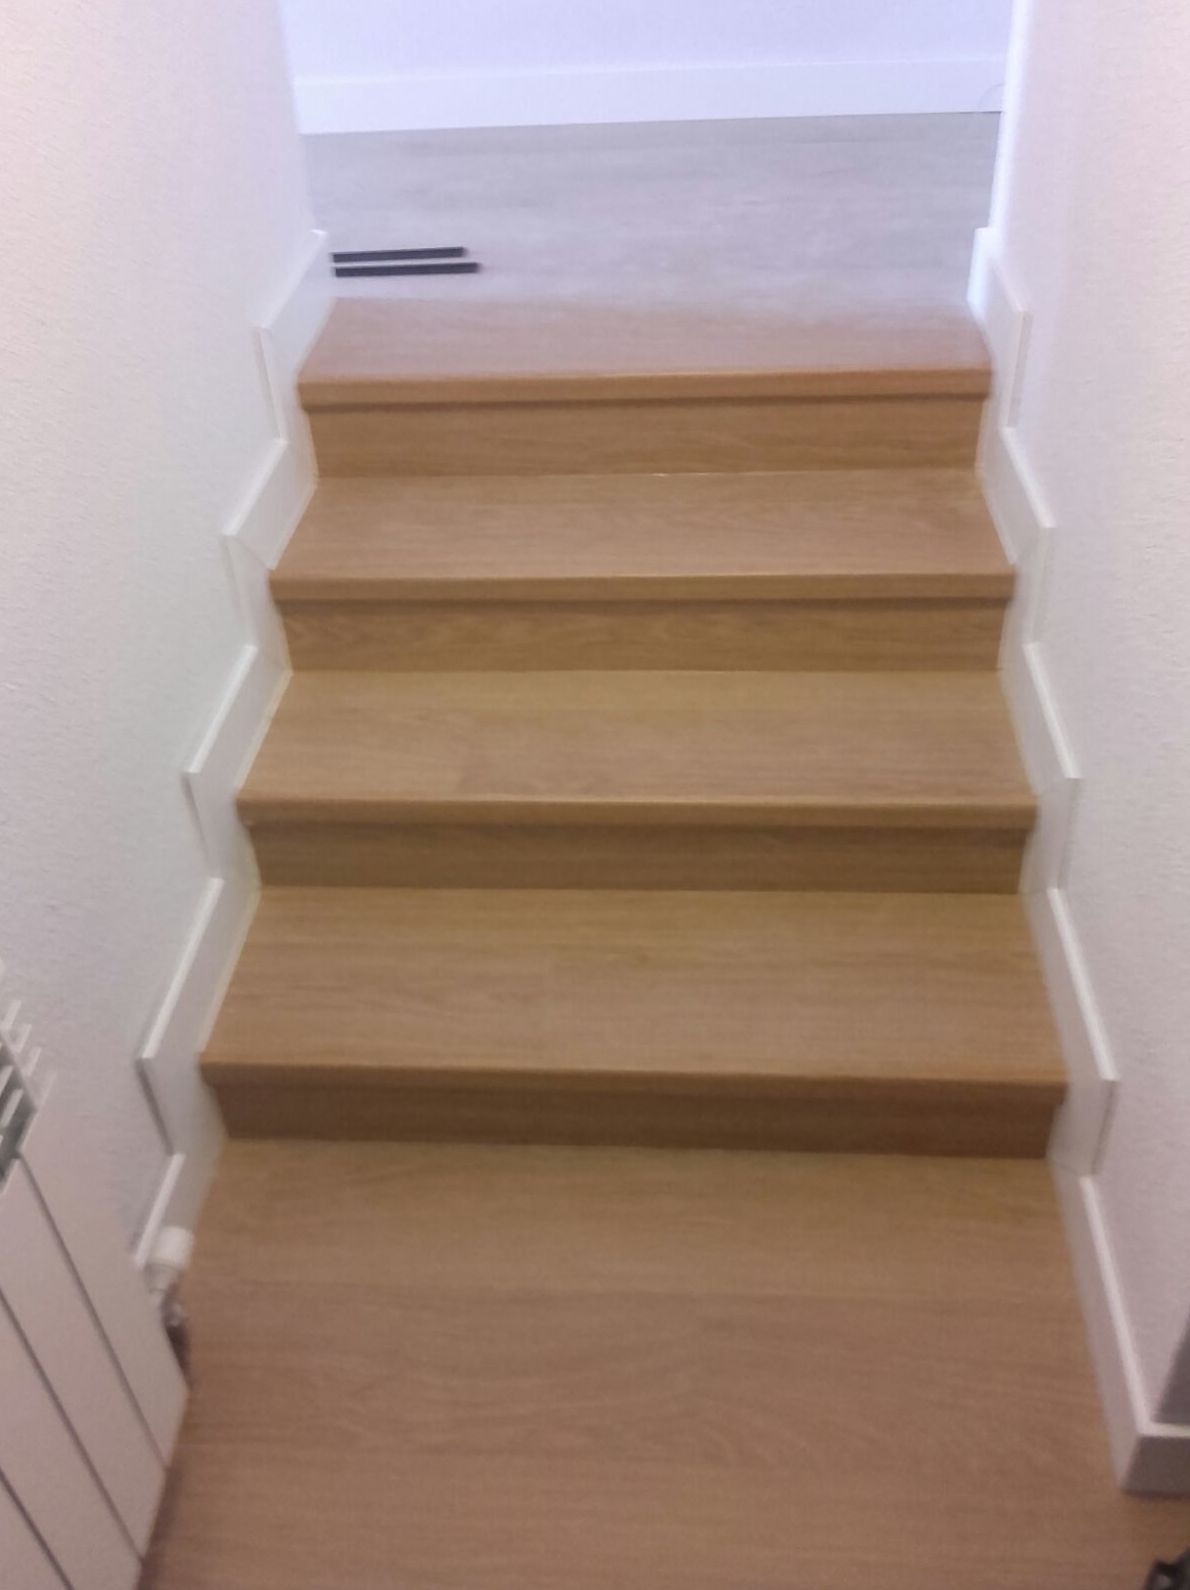 Quick-Step serie Impressive 8mm. modelo Roble Barnizado Natural en Planchas.